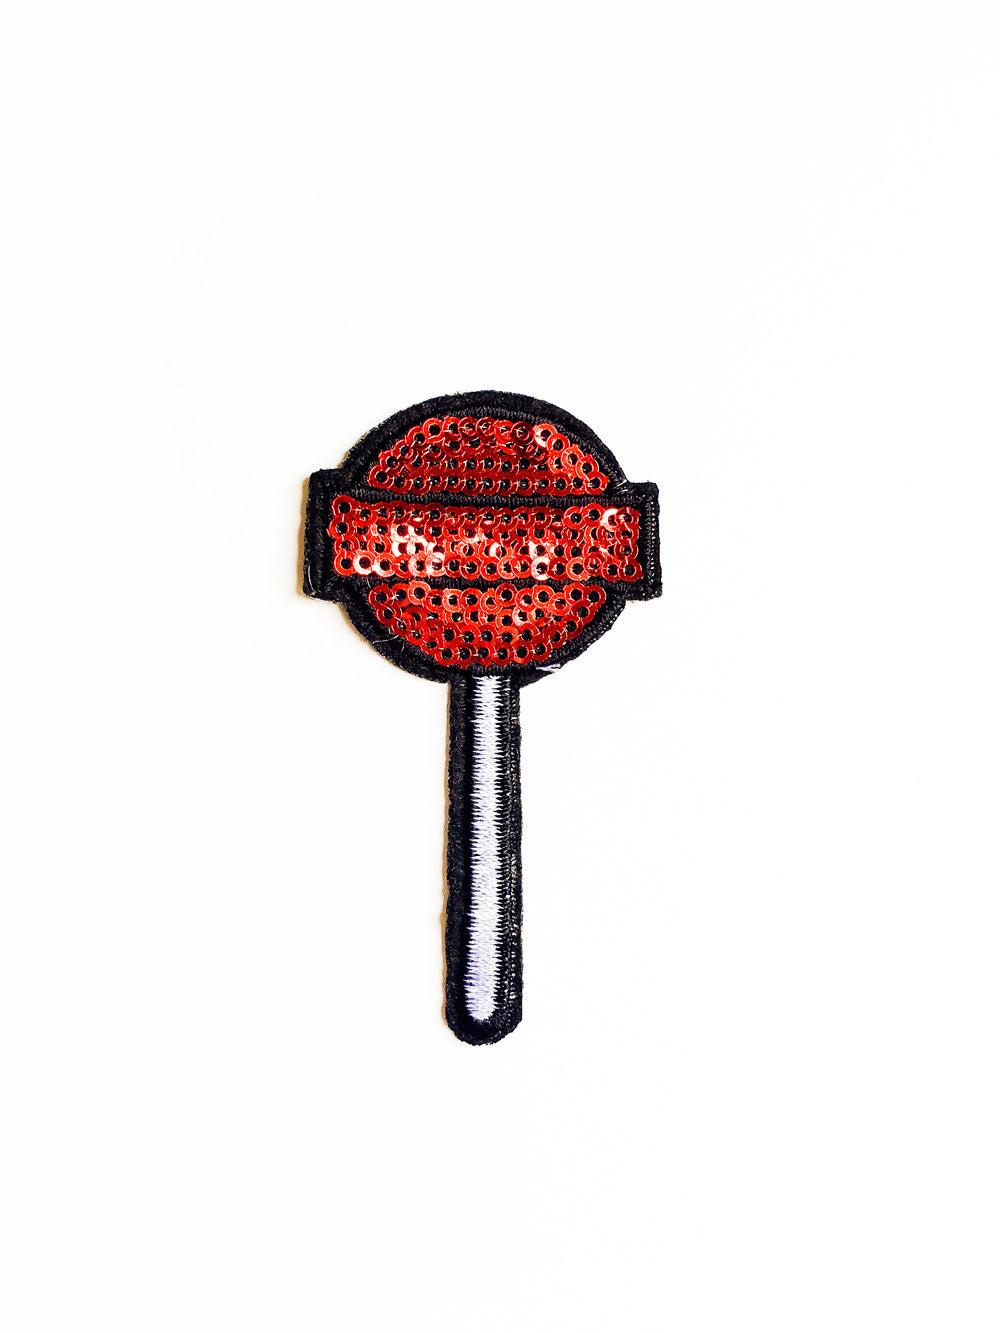 Red Sequin Sucker Punch Iron On Patch